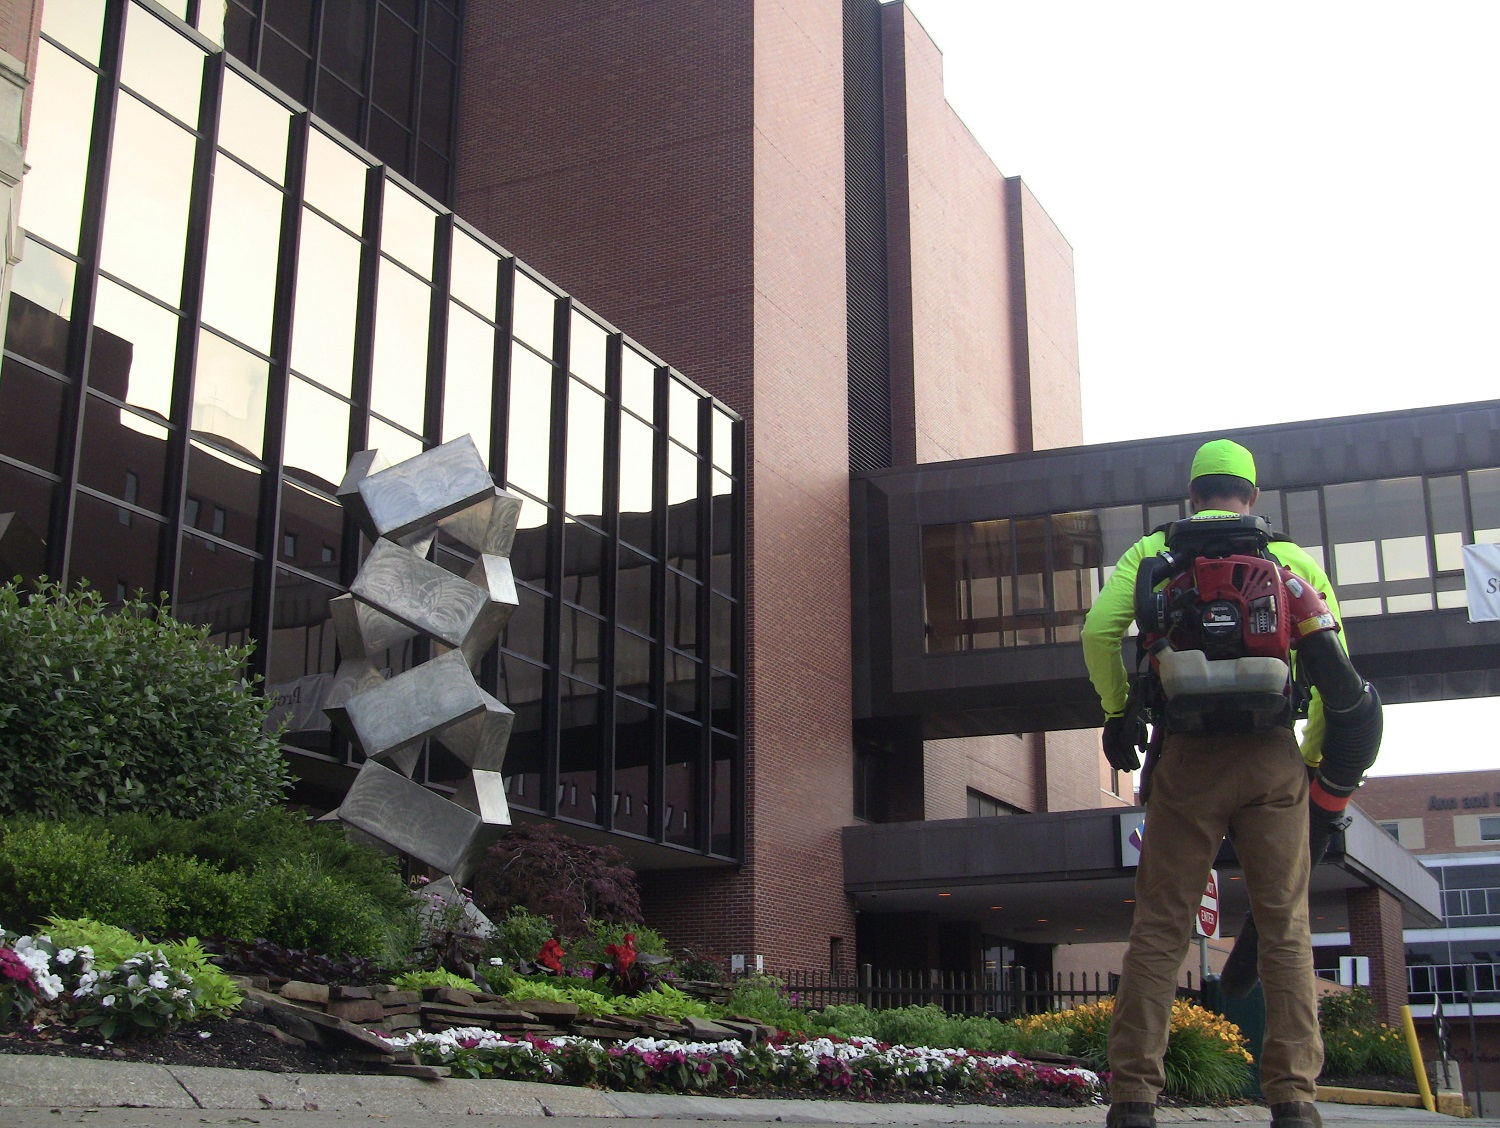 Lawn care technician cleaning up at a hospital